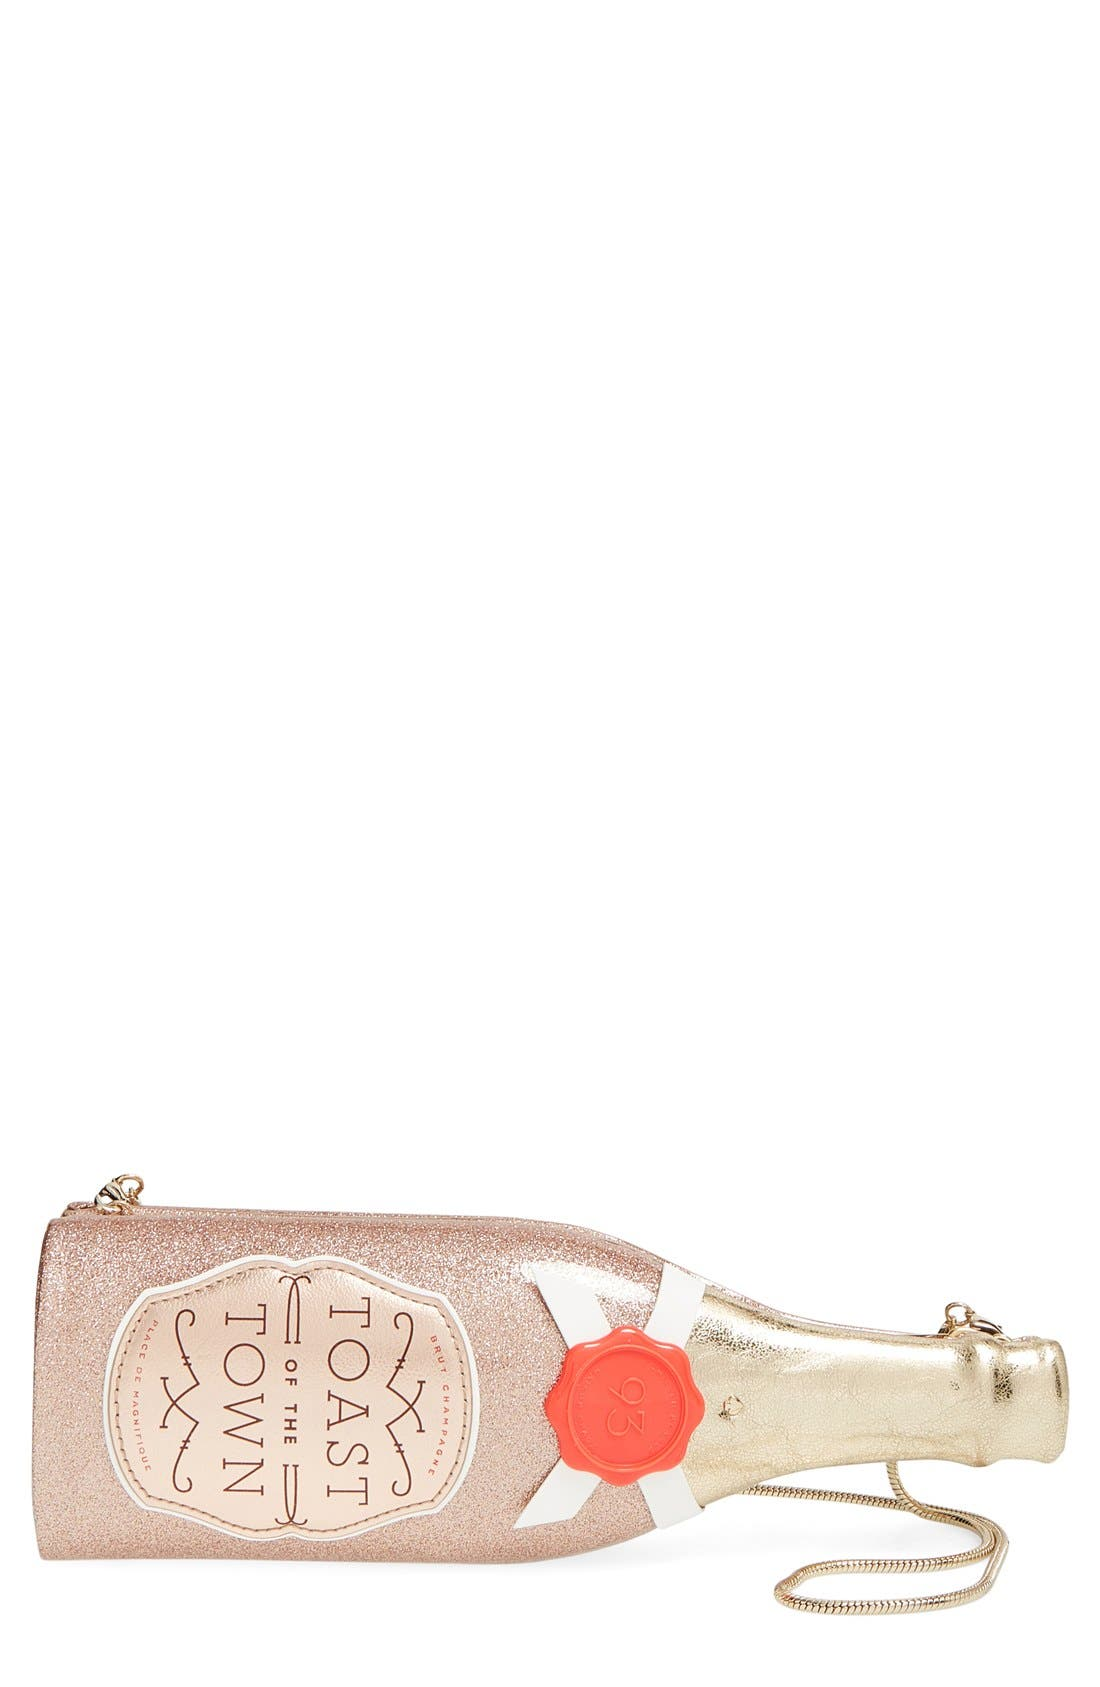 Alternate Image 1 Selected - kate spade new york 'champagne bottle' clutch